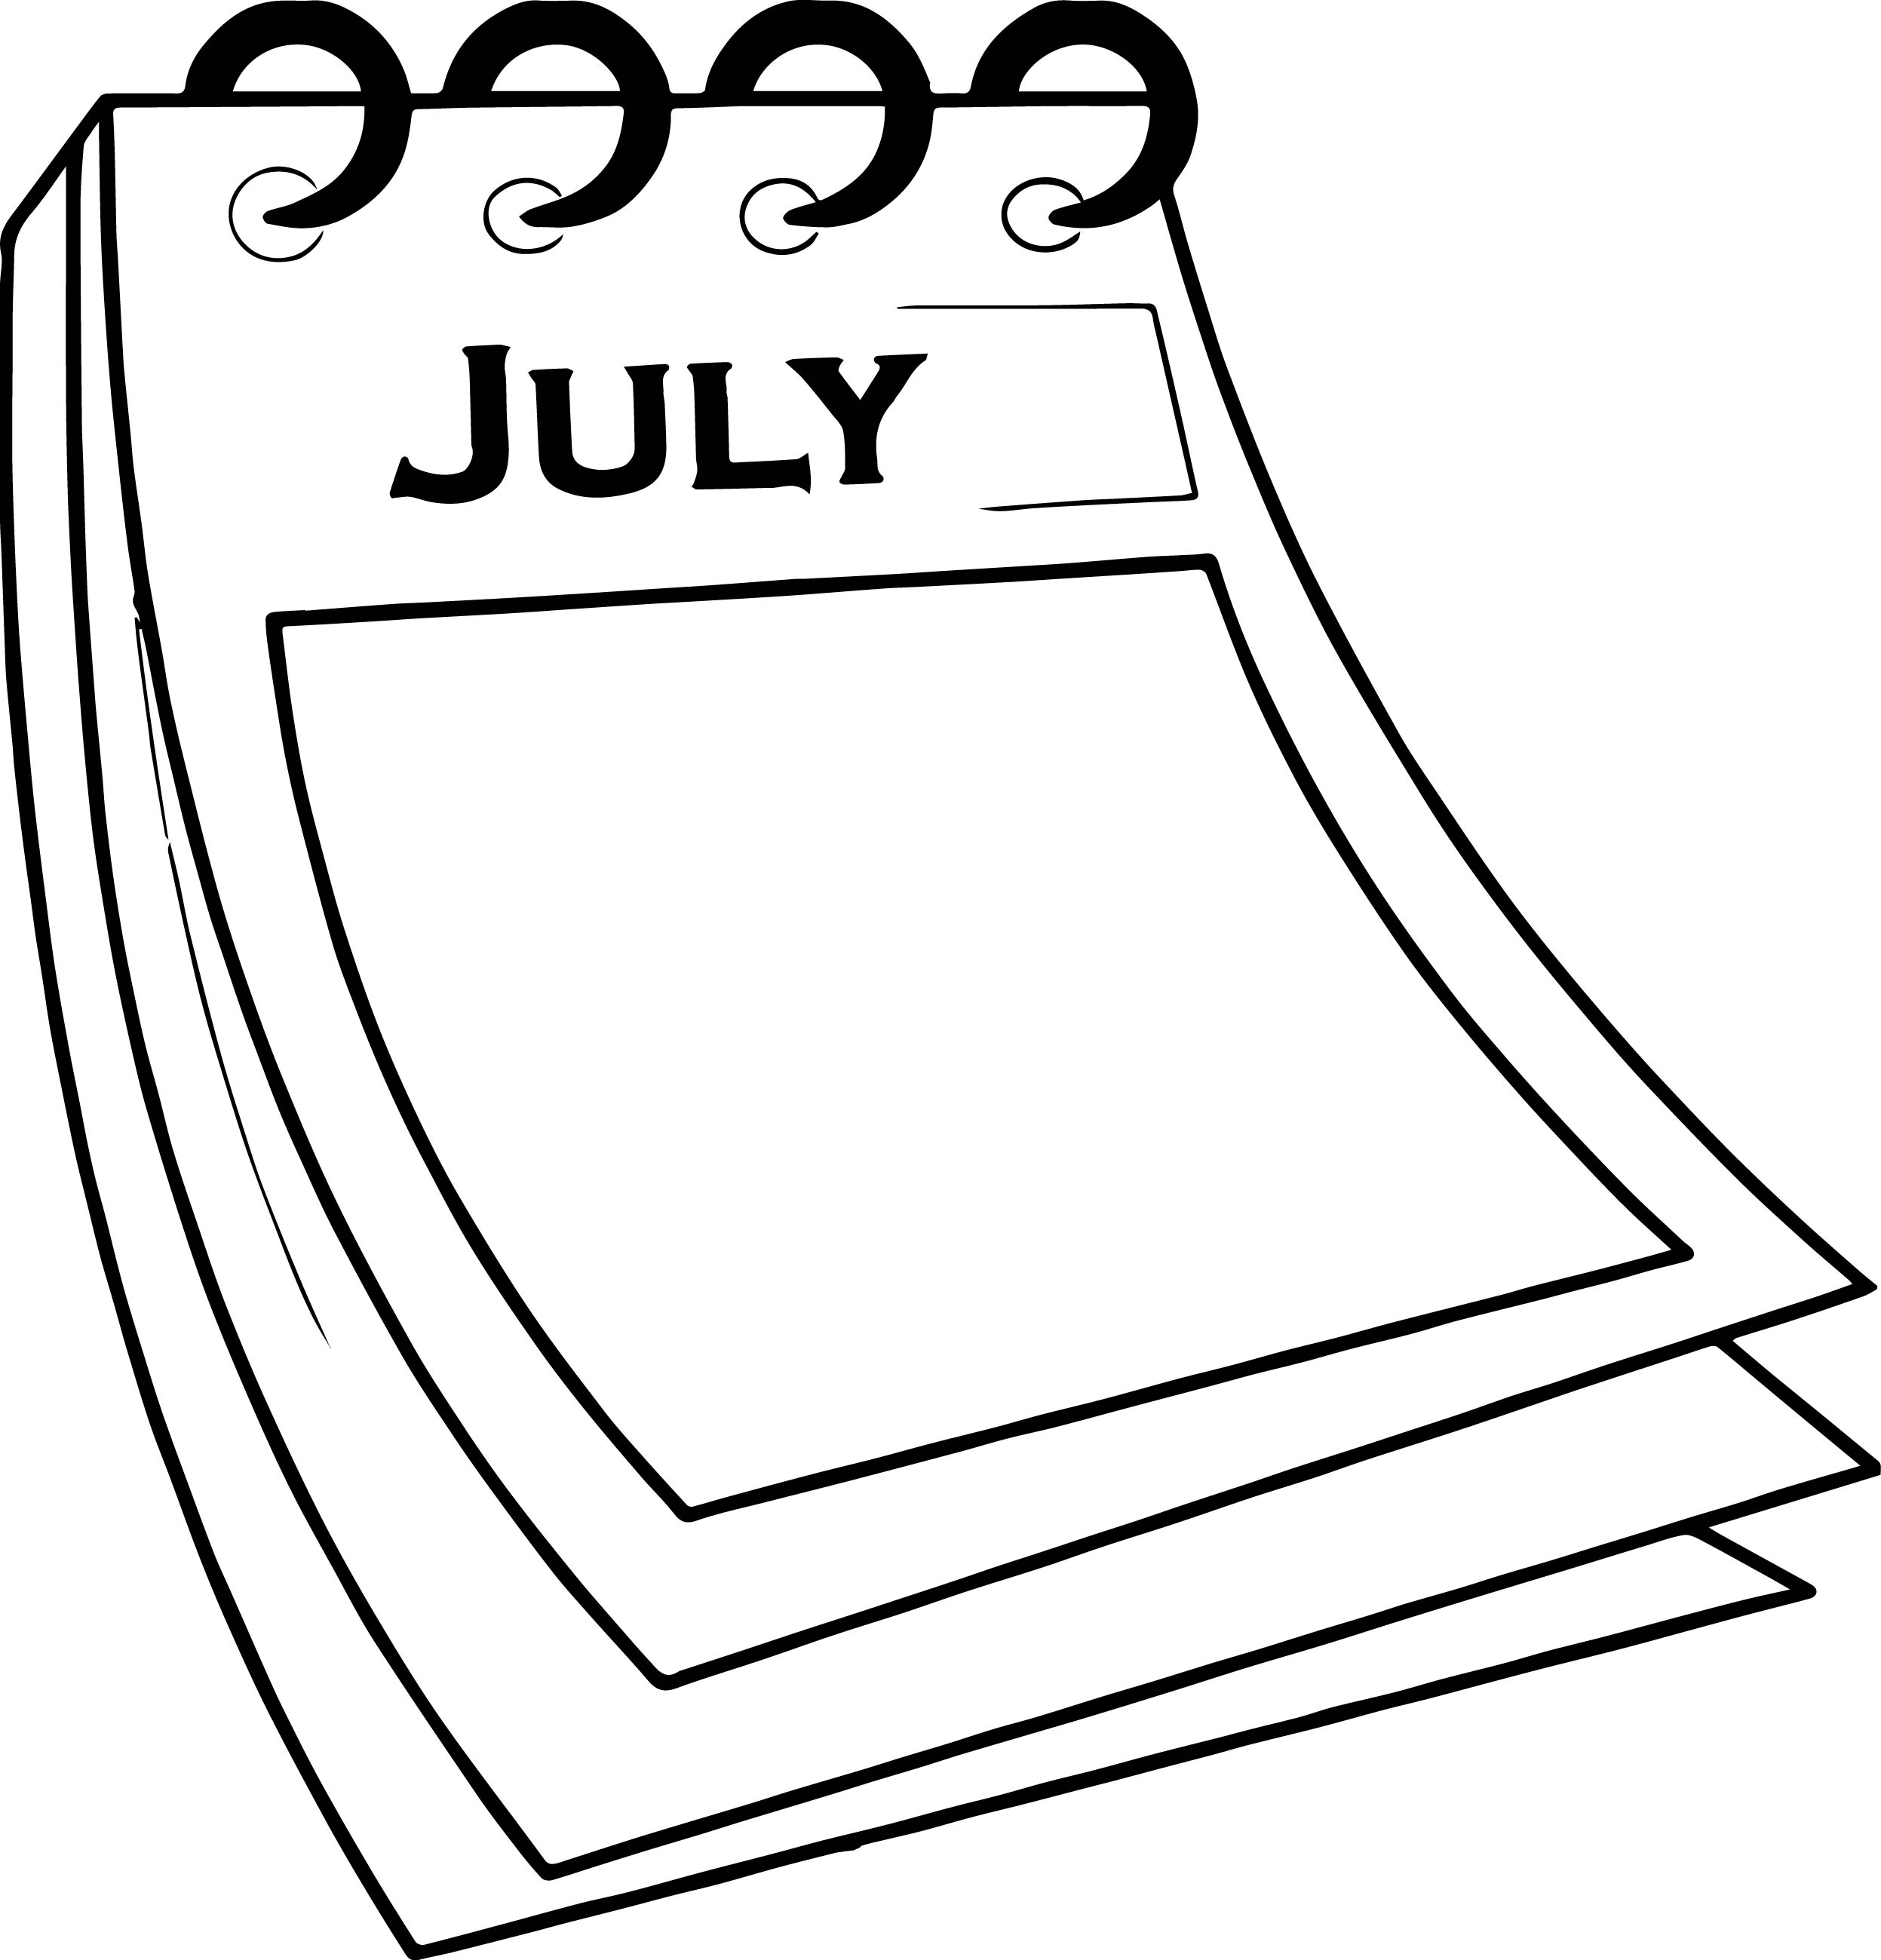 4th of july coloring pages - 4th july calendar paper coloring page